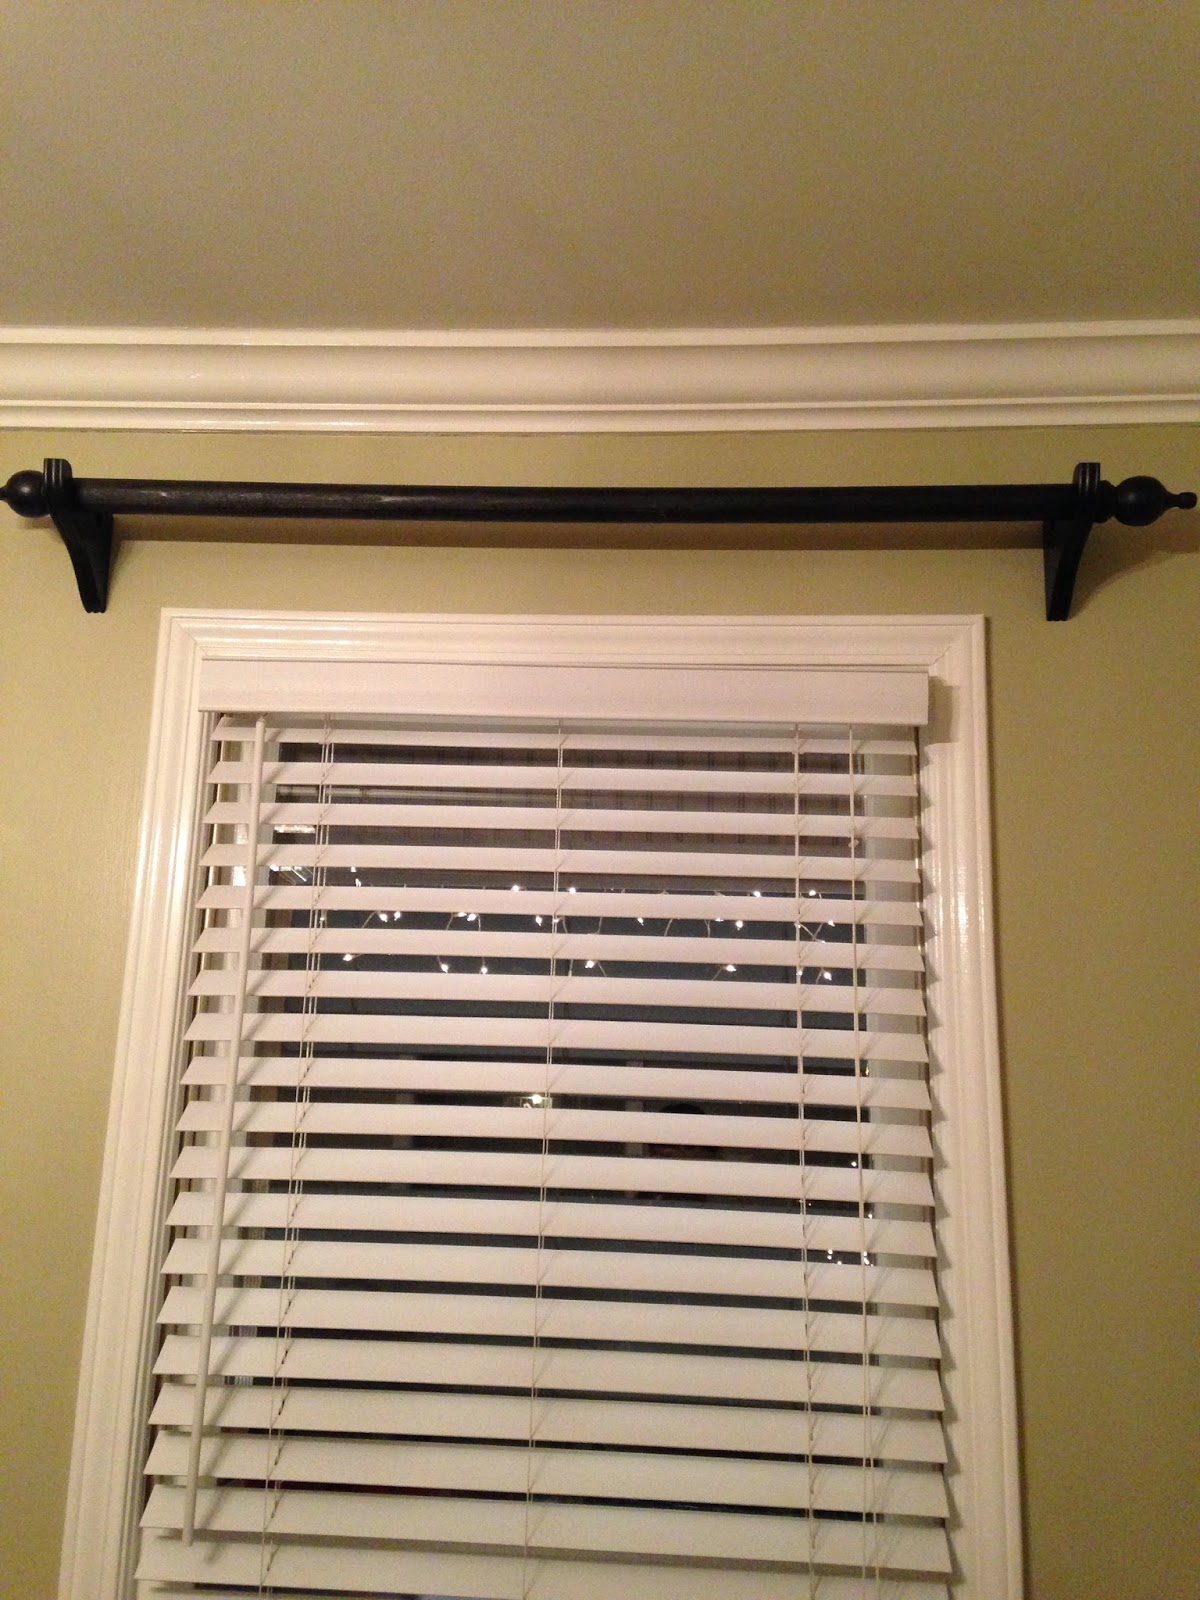 Wooden curtain brackets - It S A Wooden Dowel Rod With Wood Brackets She Spray Painted Them Black And They Look So Great And Pretty Expensive Considering How